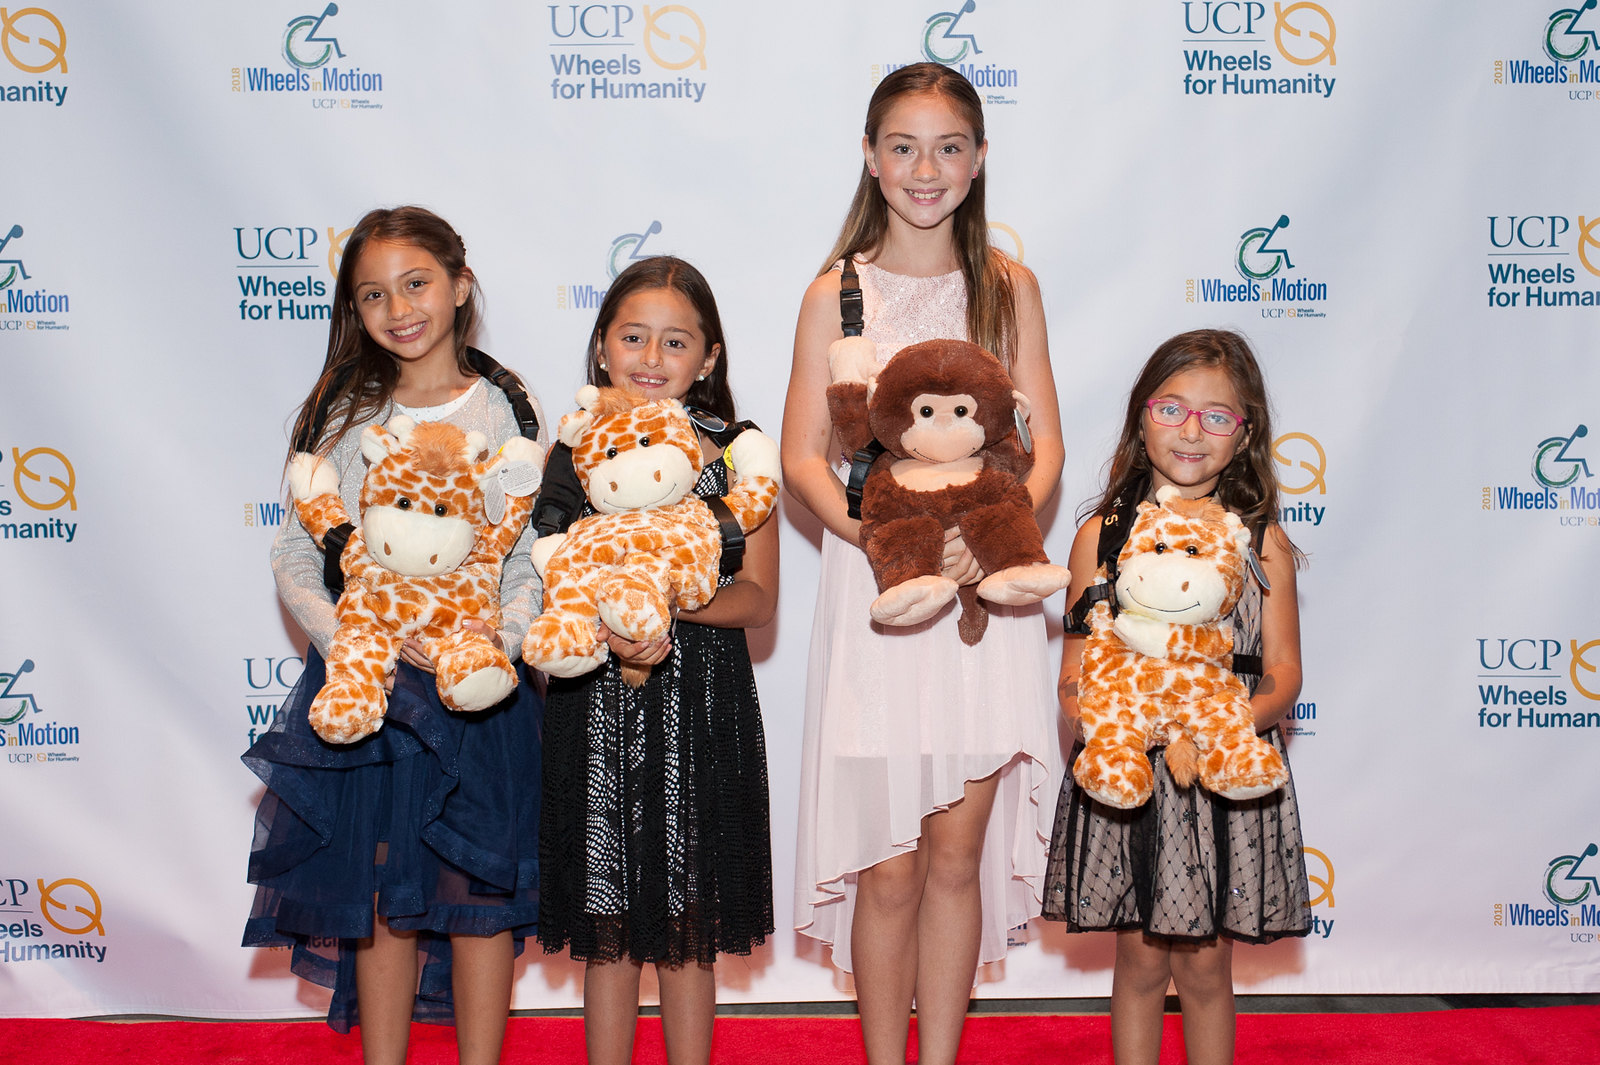 Children at the gala